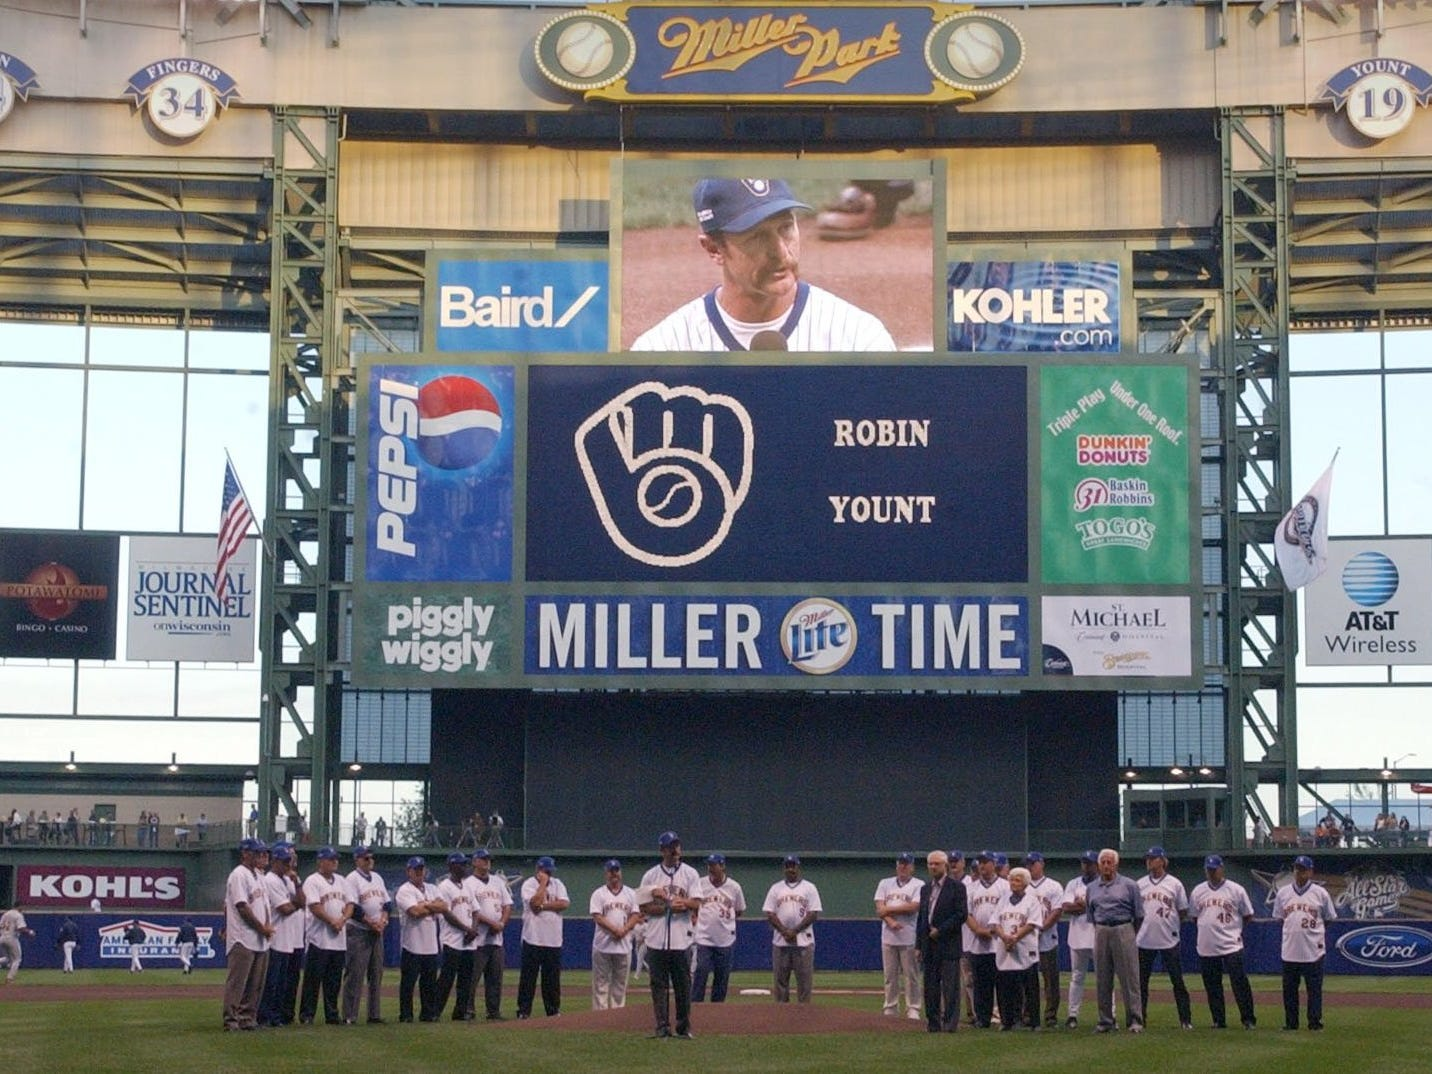 Hall of Famer and Brewers great Robin Yount addresses the crowd during the pregame ceremony celebrating the 20th anniversary of the 1982 American League Champions.